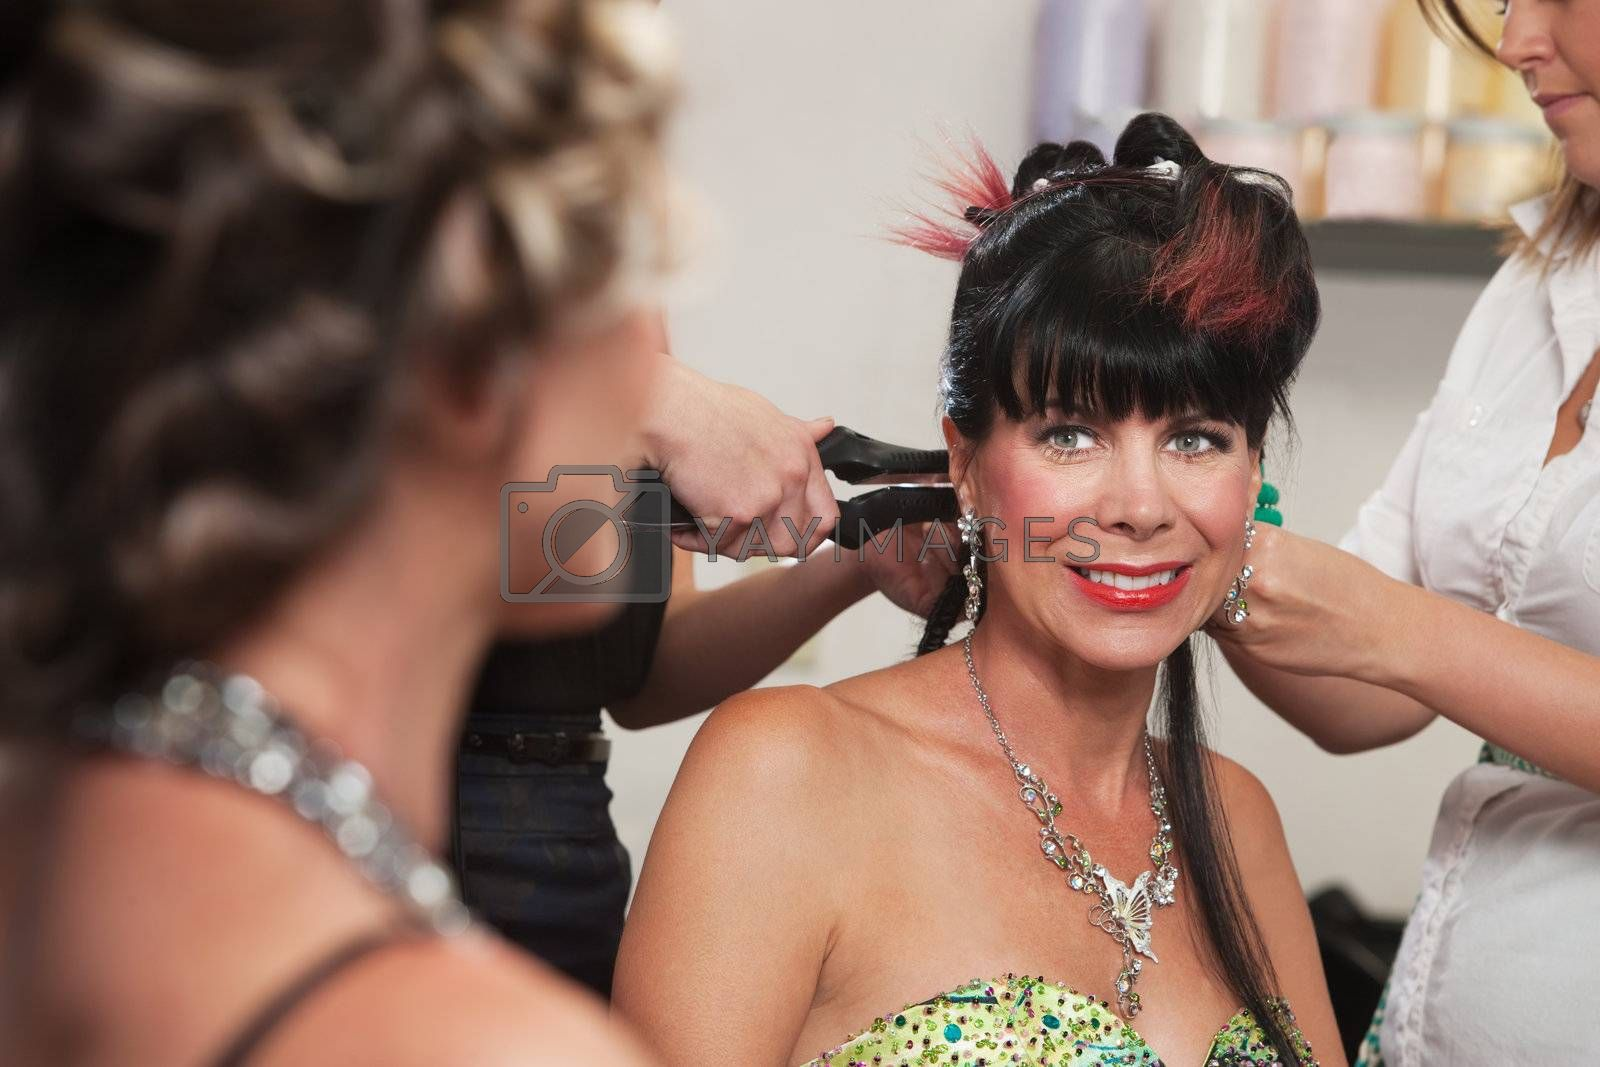 Smiling woman looking at lady with hair stylists working